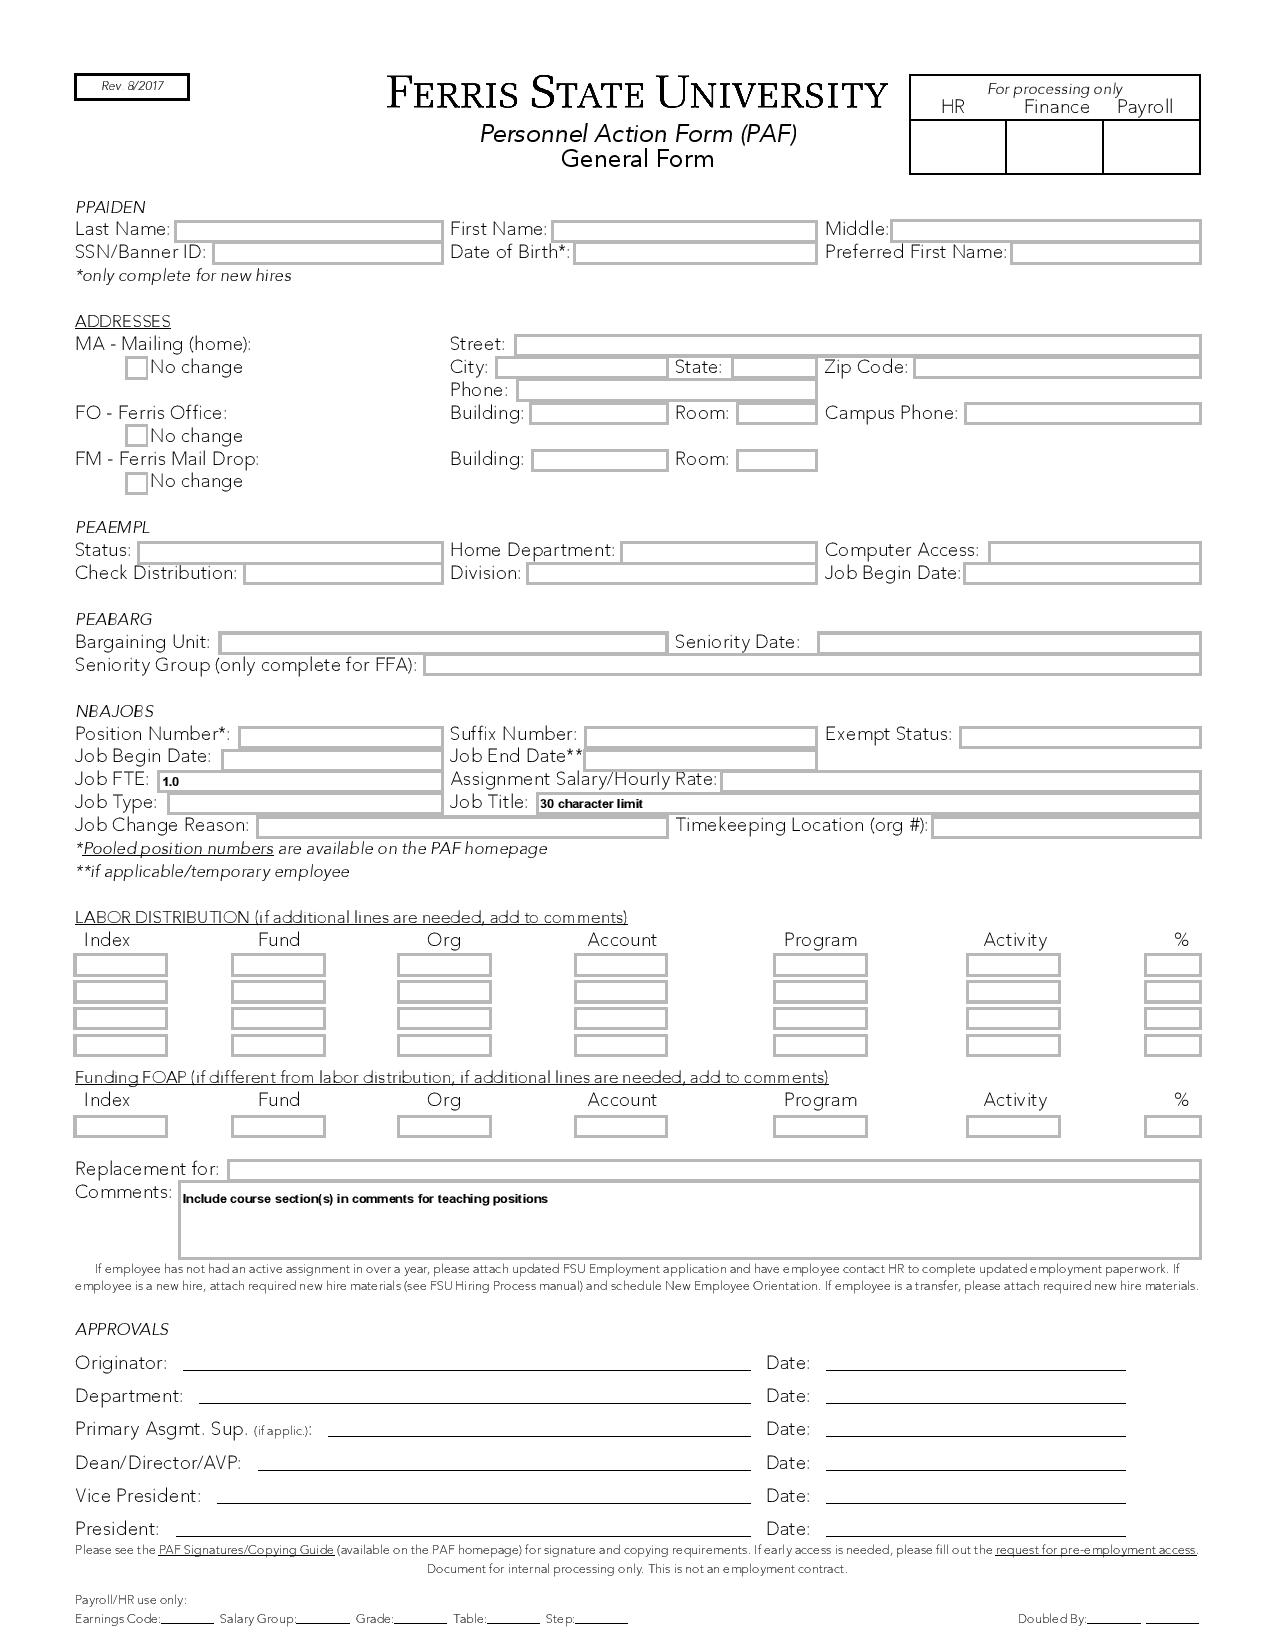 general personnel action form page 0011